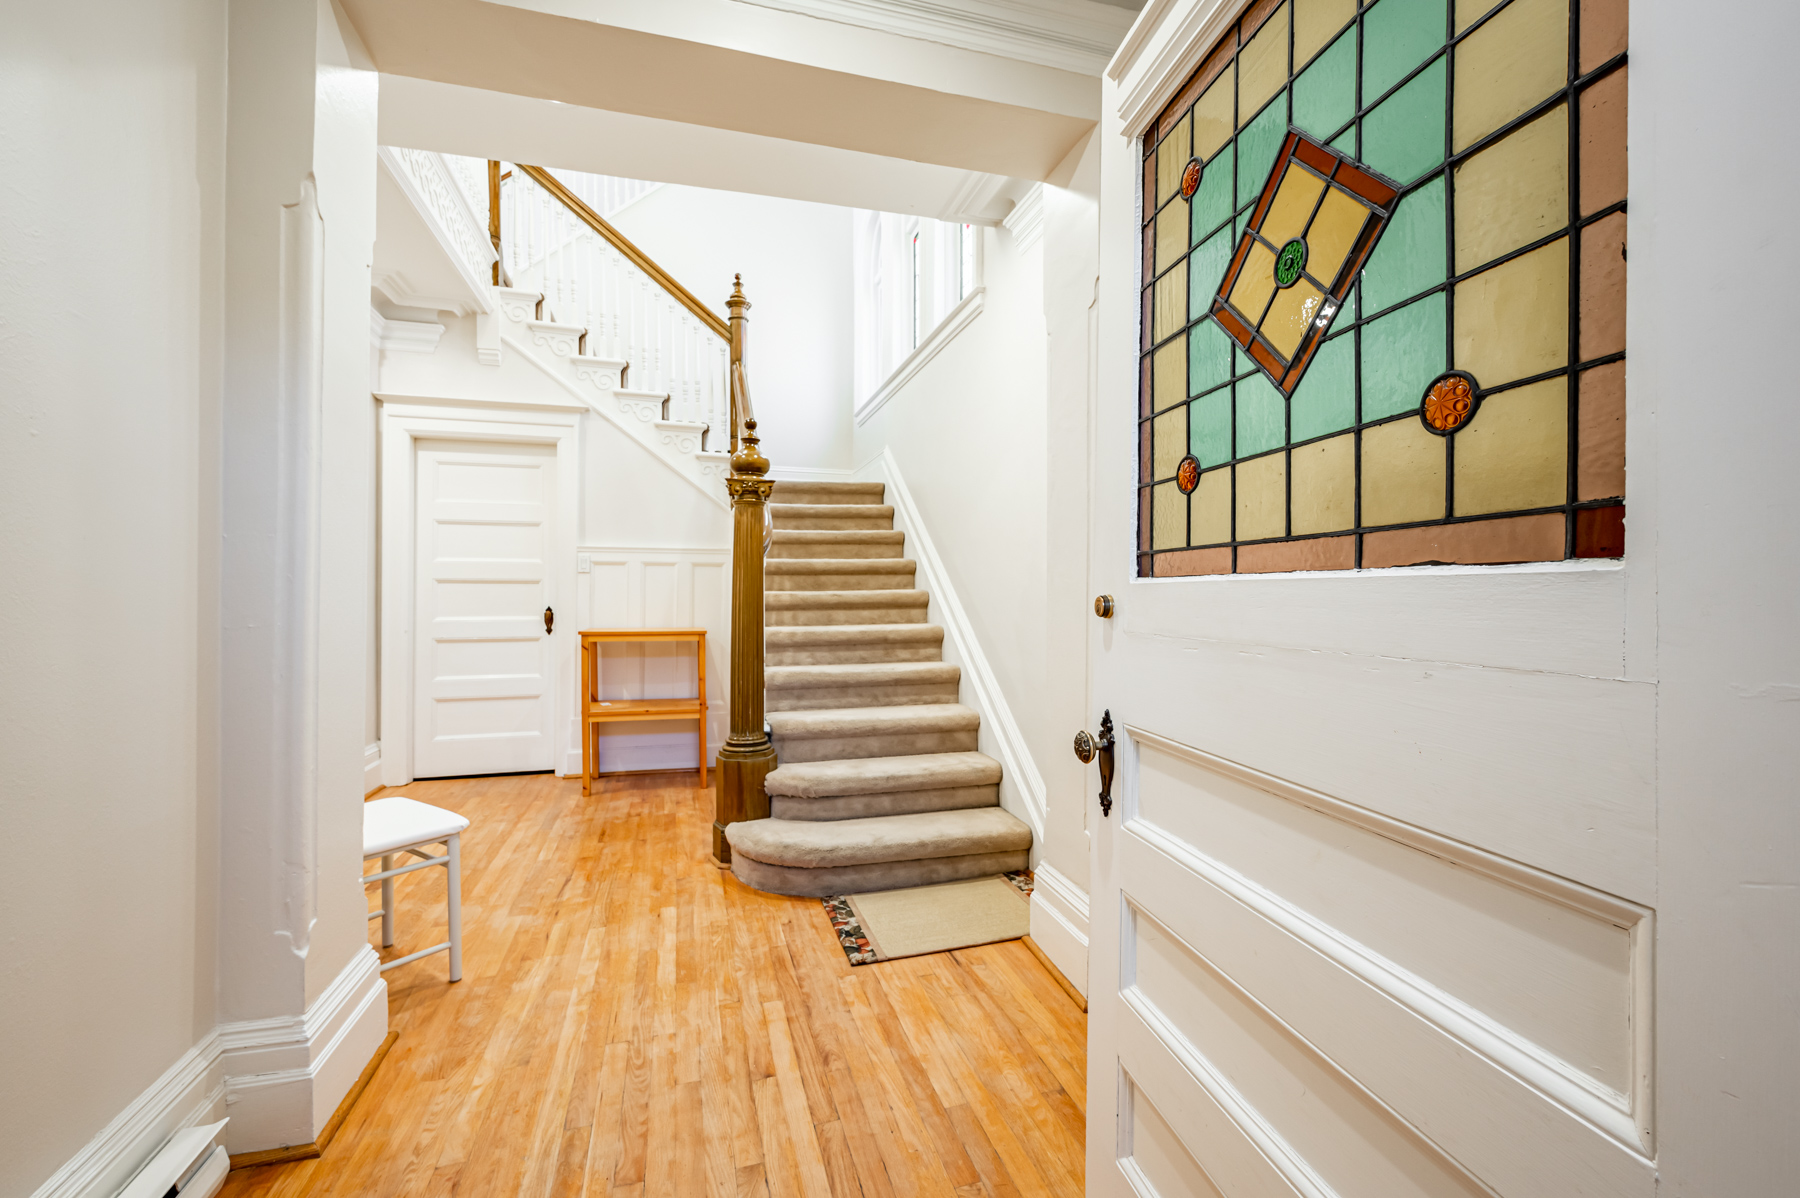 98 Bedford Rd foyer with hardwood floors, carpeted stairs and front door with stained glass inserts.